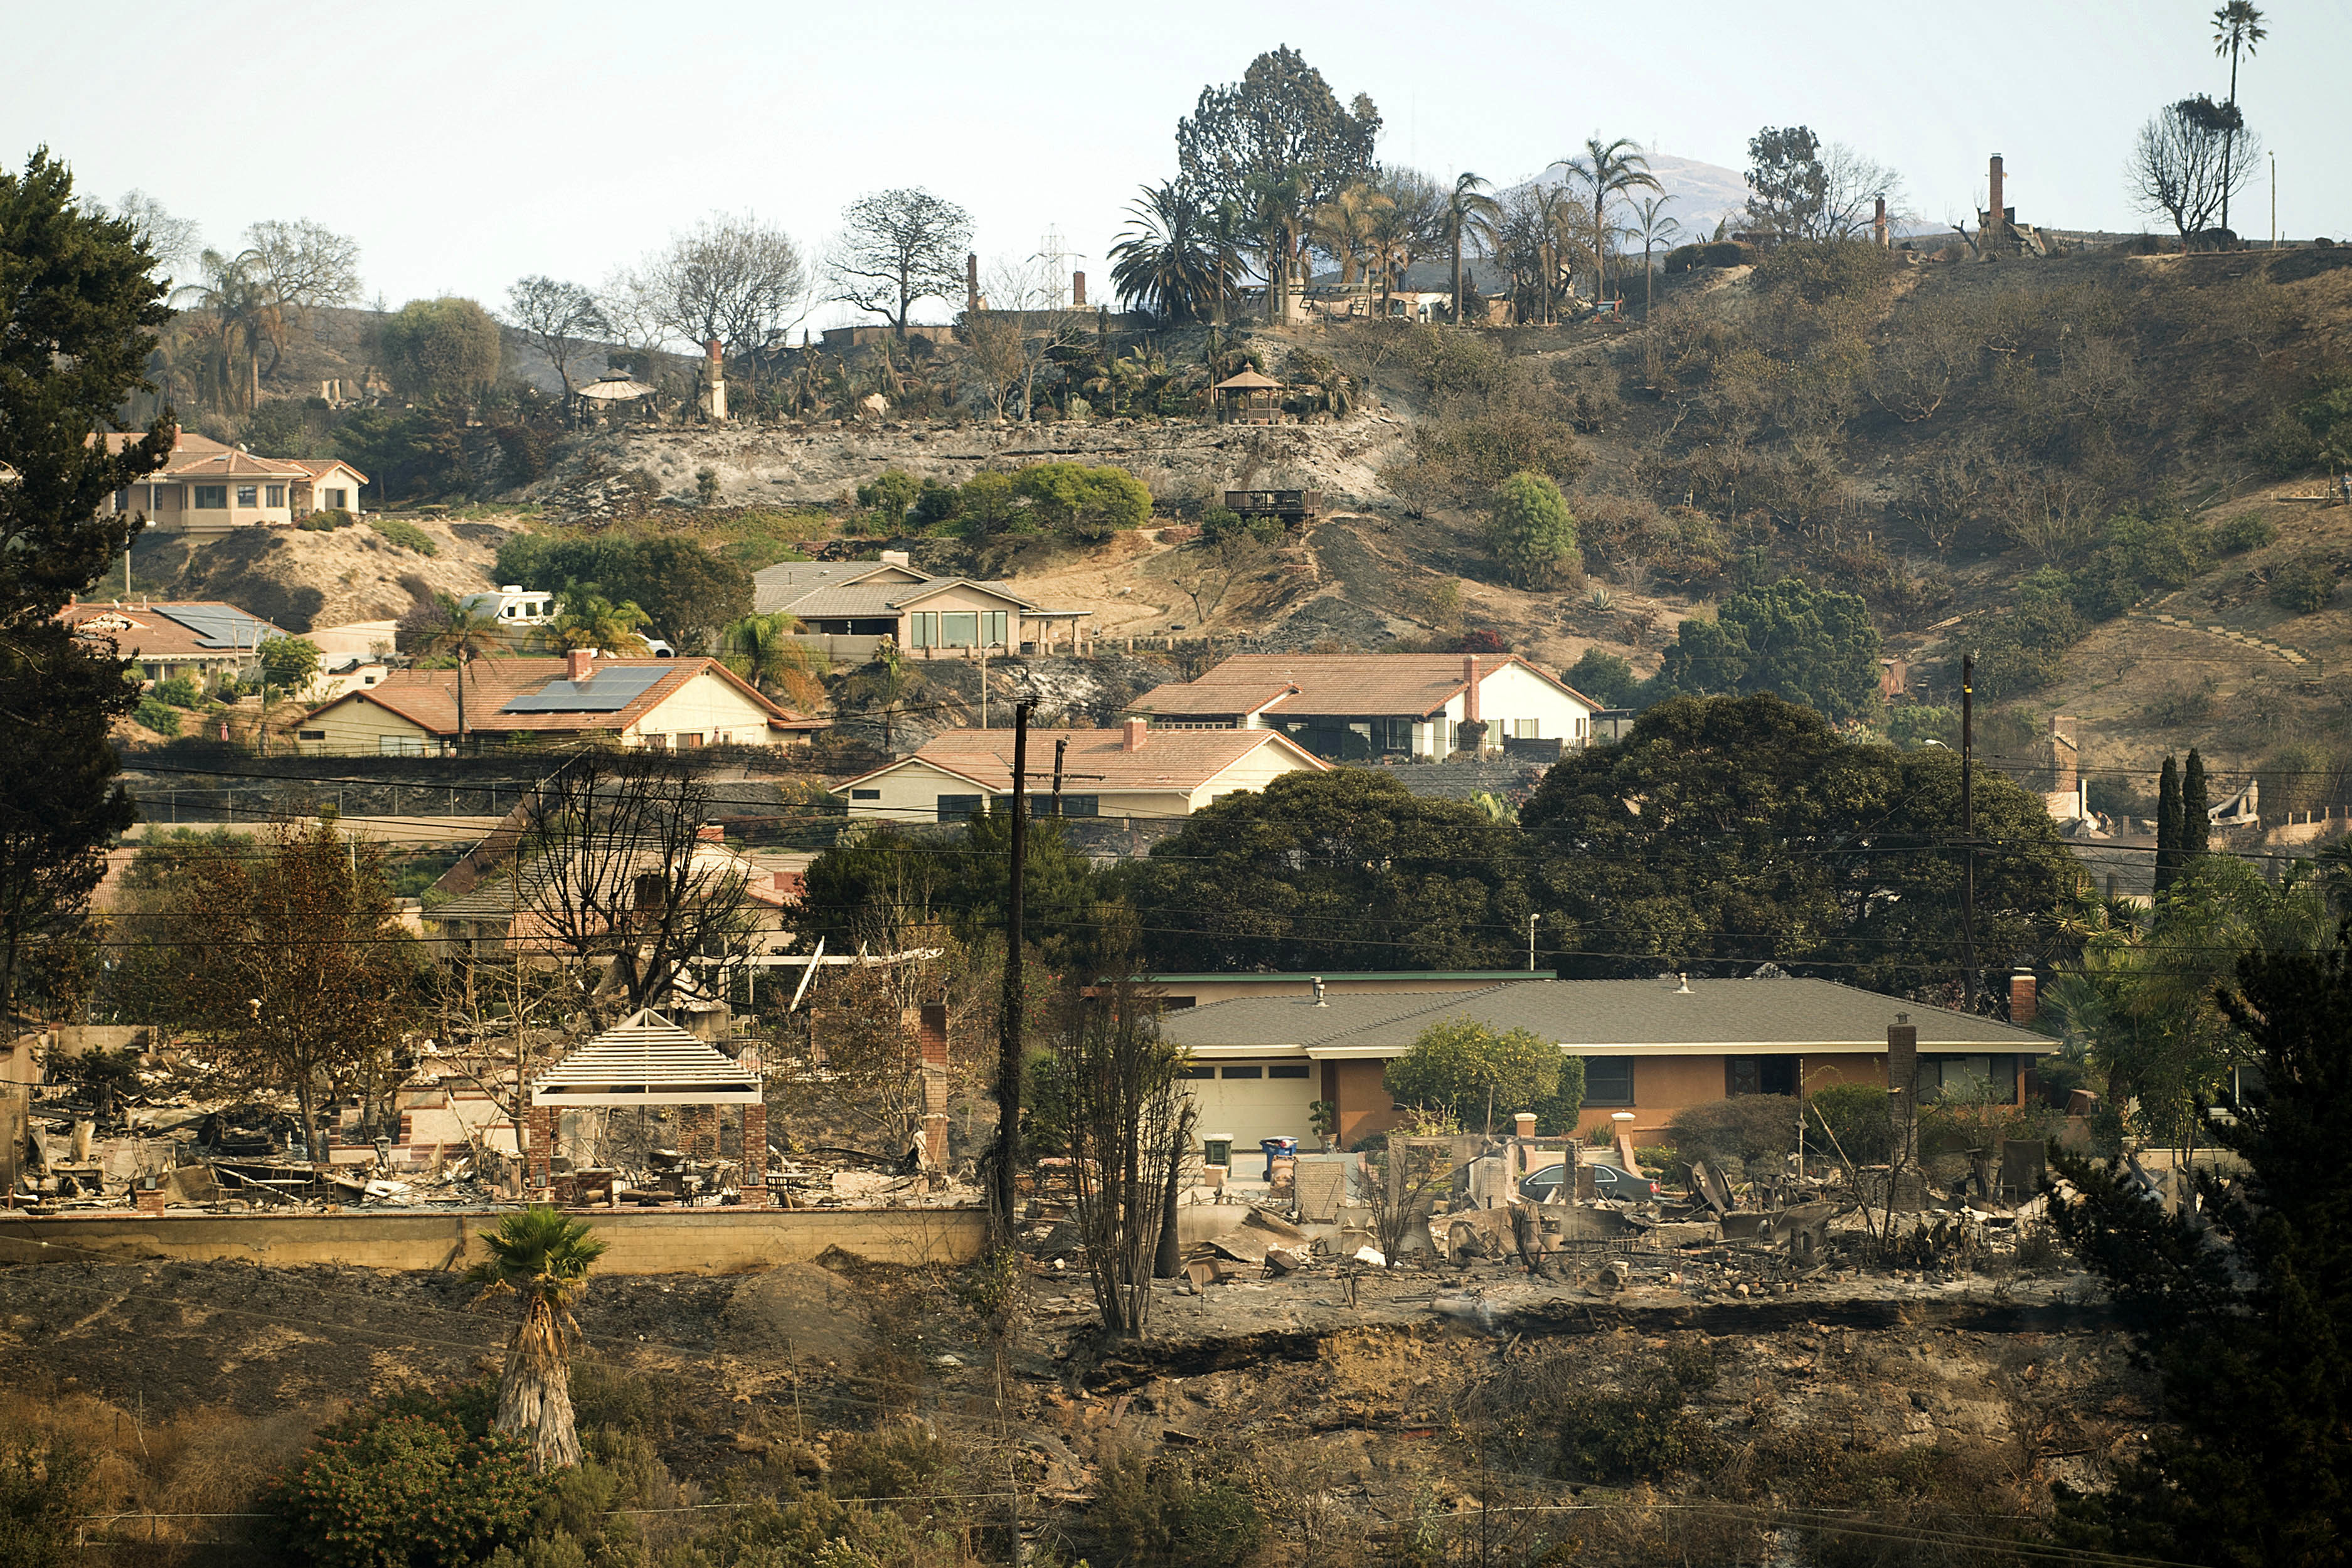 <div class='meta'><div class='origin-logo' data-origin='none'></div><span class='caption-text' data-credit='Noah Berger/AP Photo'>Homes scorched by a wildfire line a hillside in Ventura, Calif., on Wednesday, Dec. 6, 2017.</span></div>